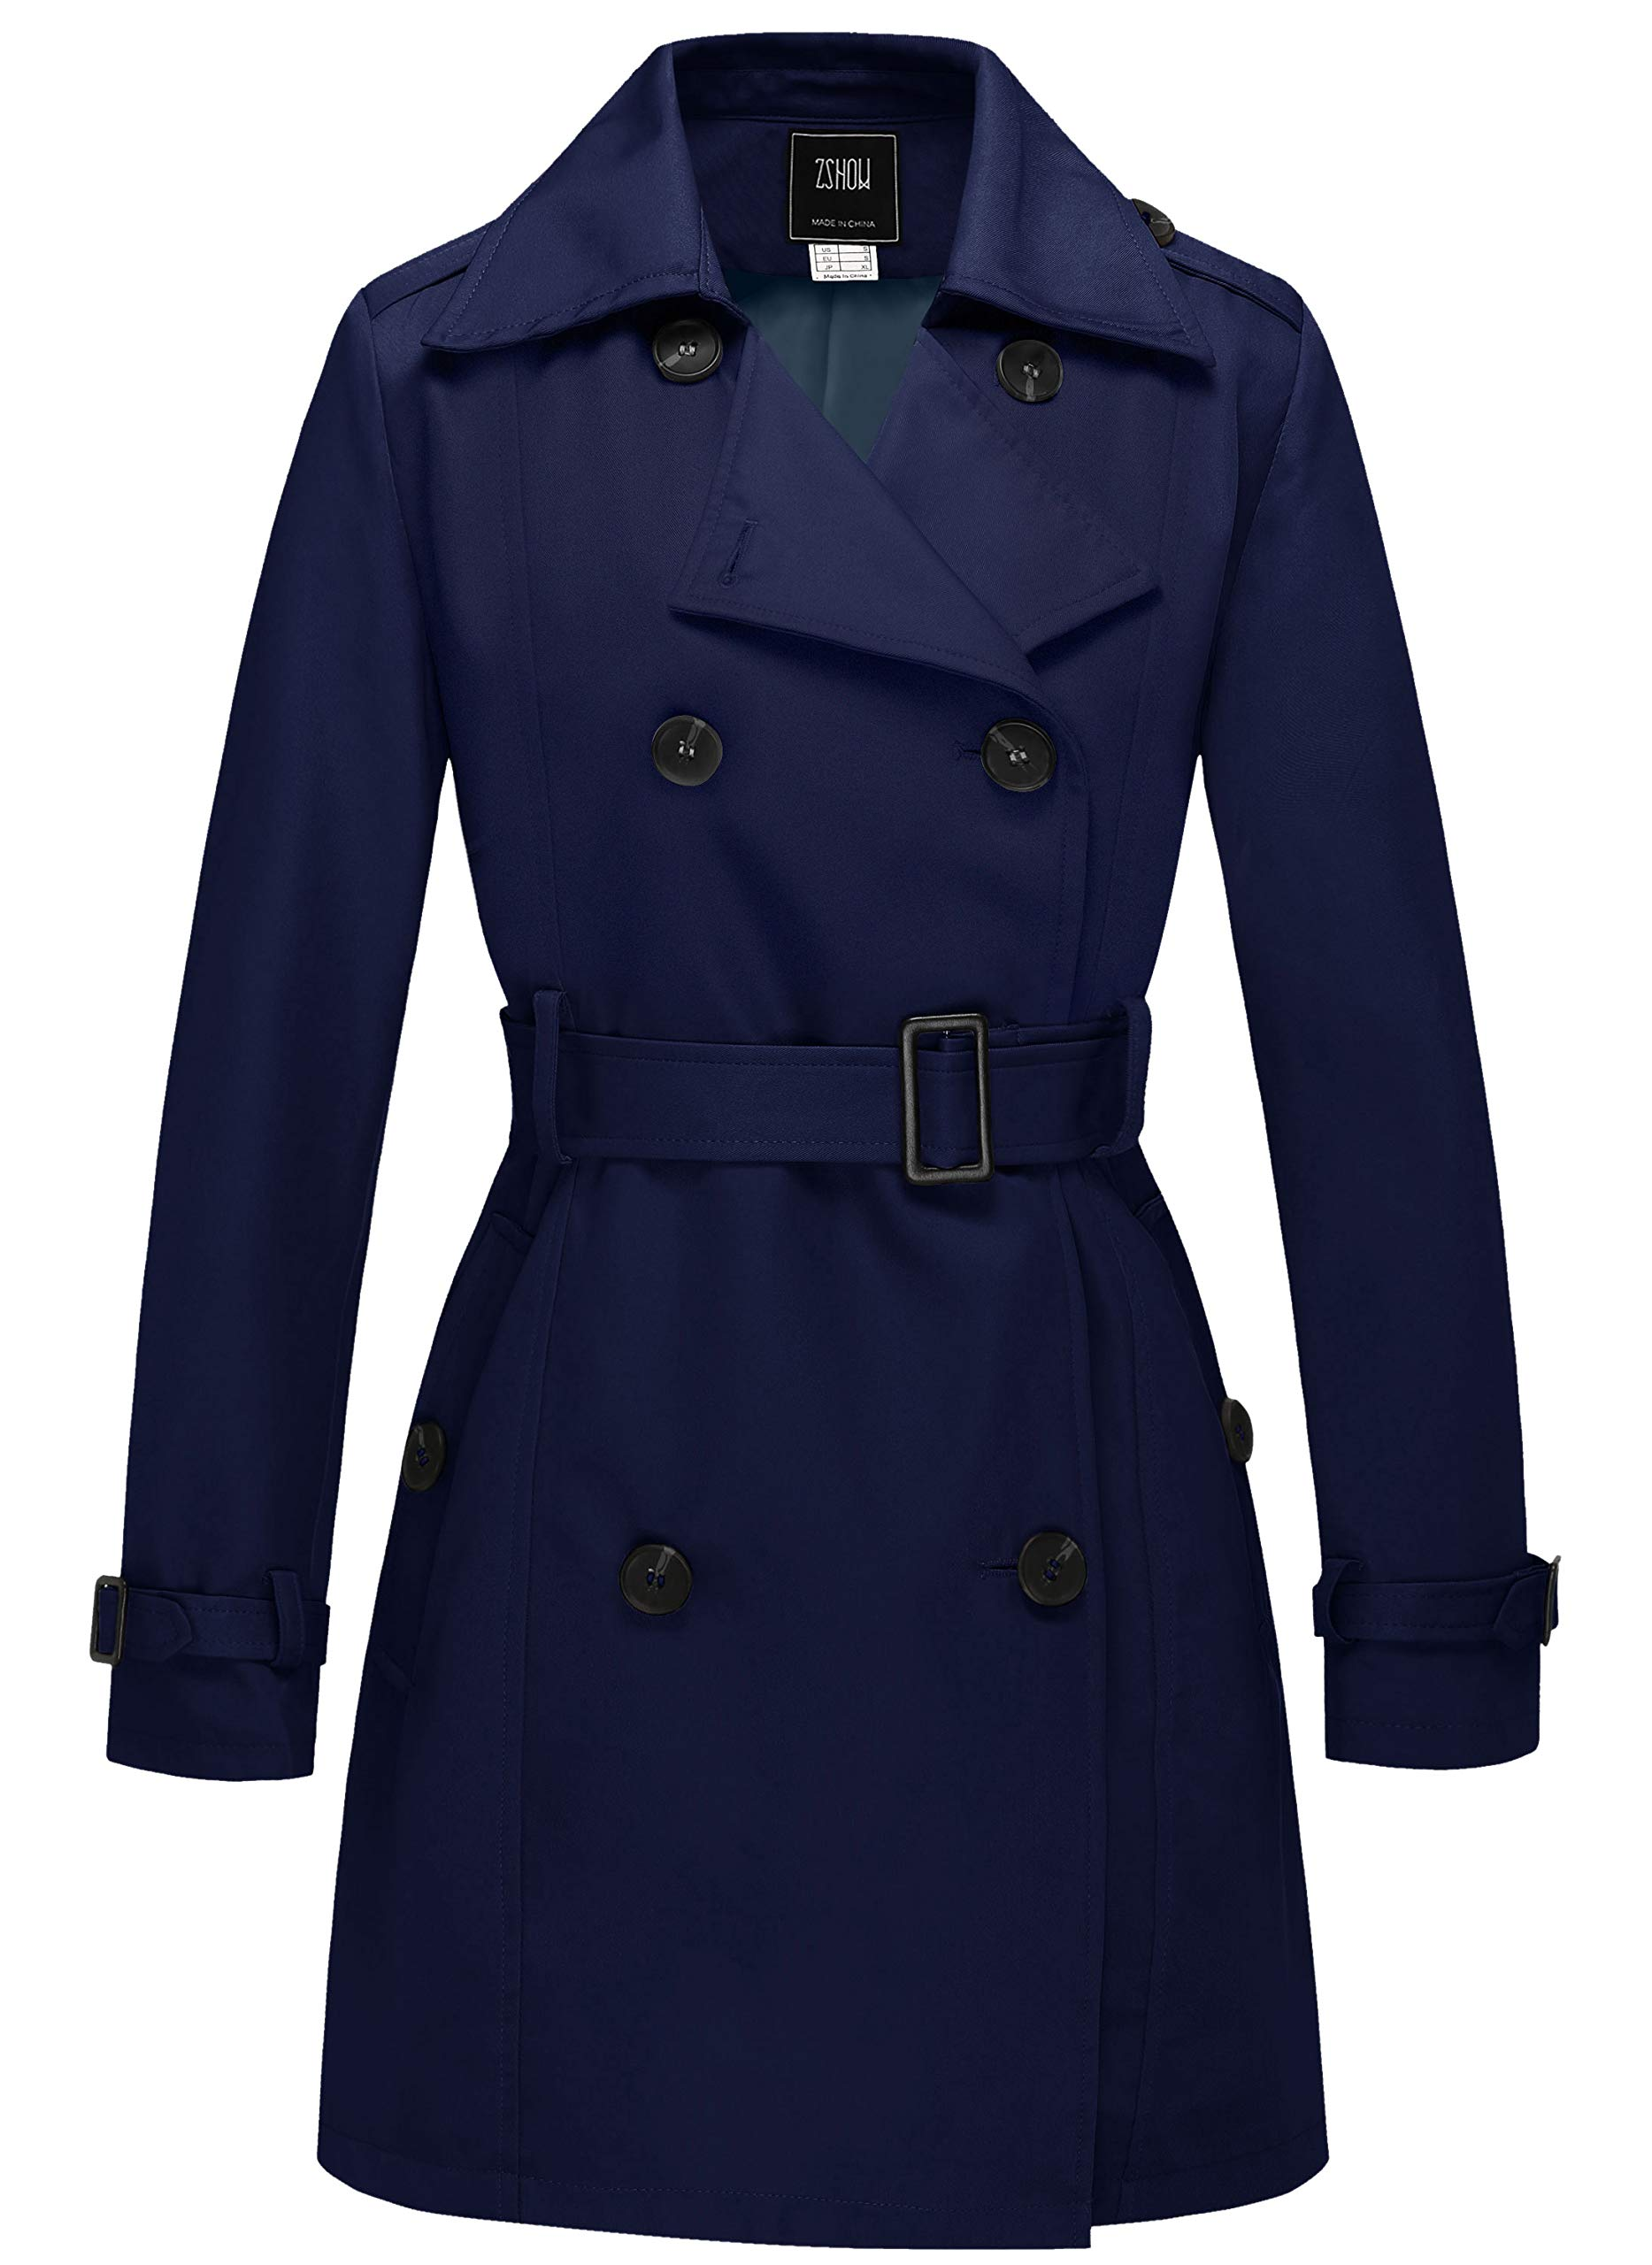 ZSHOW Women's Double Breasted Trench Coat with Belt(Navy,Small) by ZSHOW